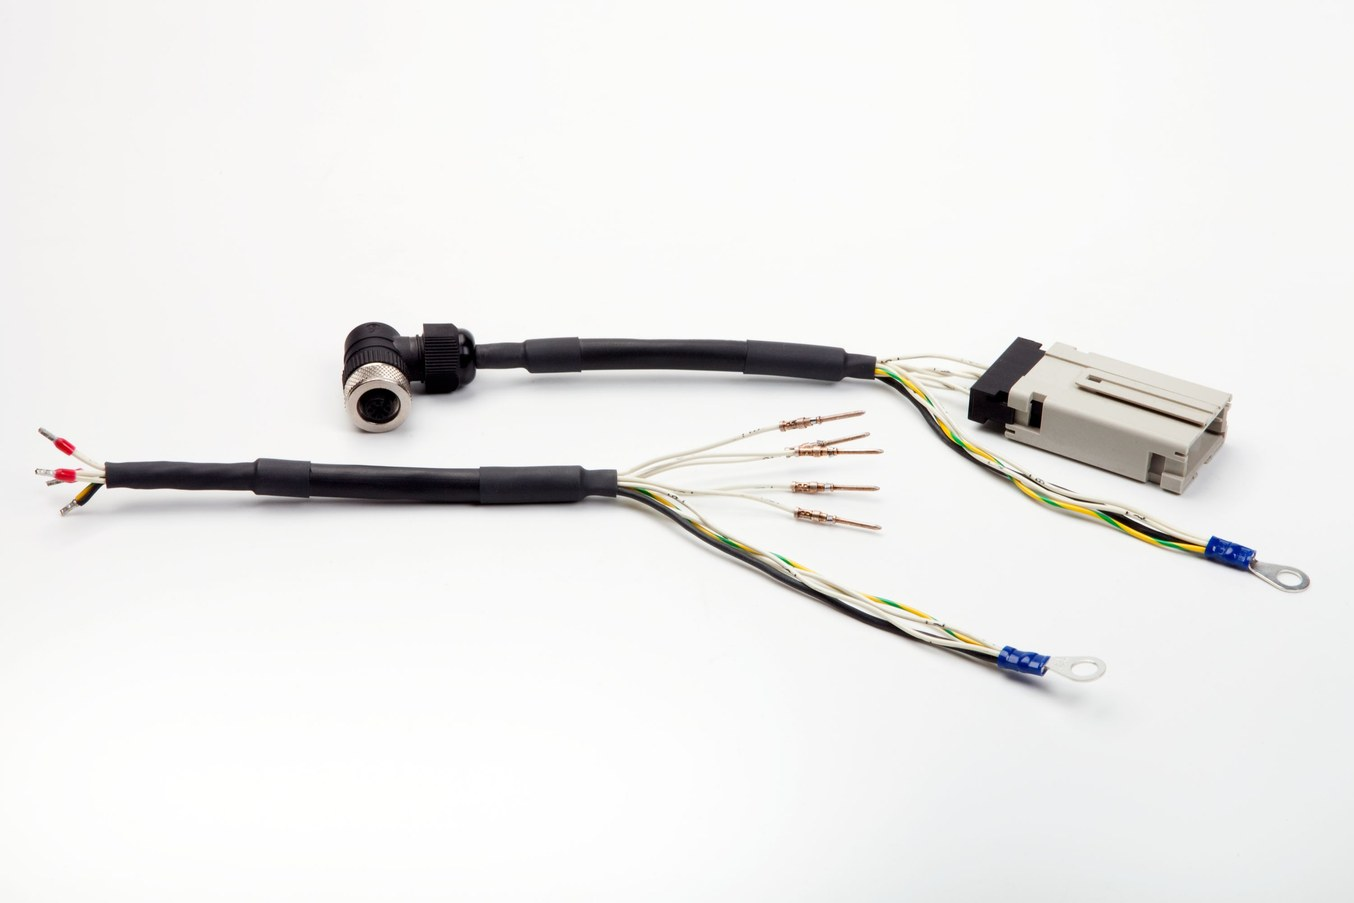 cable avec tube thermoretractable